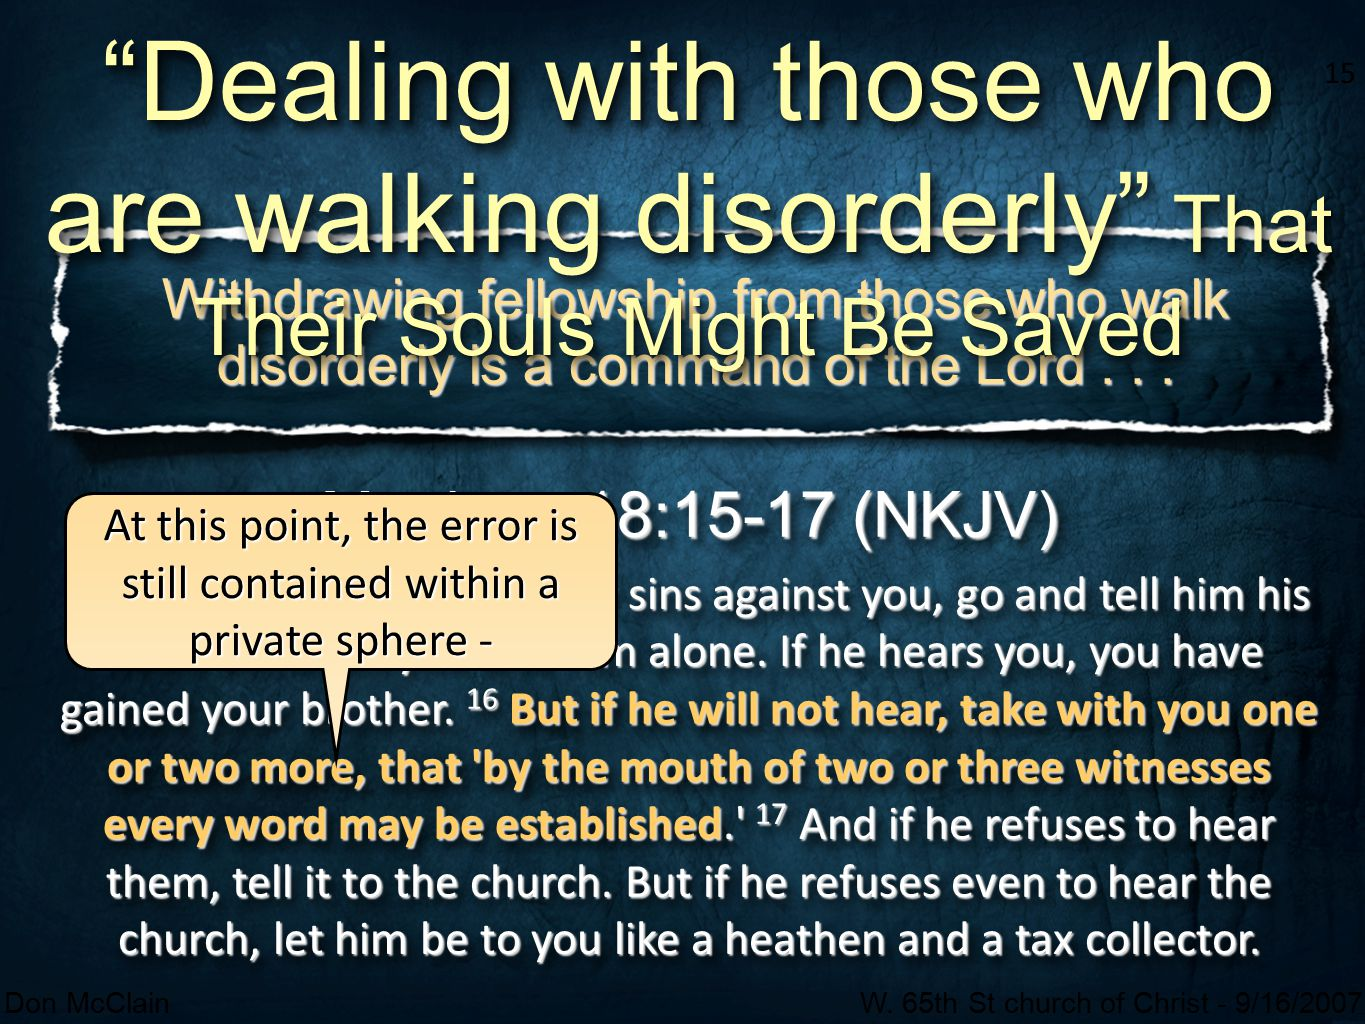 15 Don McClainW. 65th St church of Christ - 9/16/2007 15 Withdrawing fellowship from those who walk disorderly is a command of the Lord... Matthew 18: